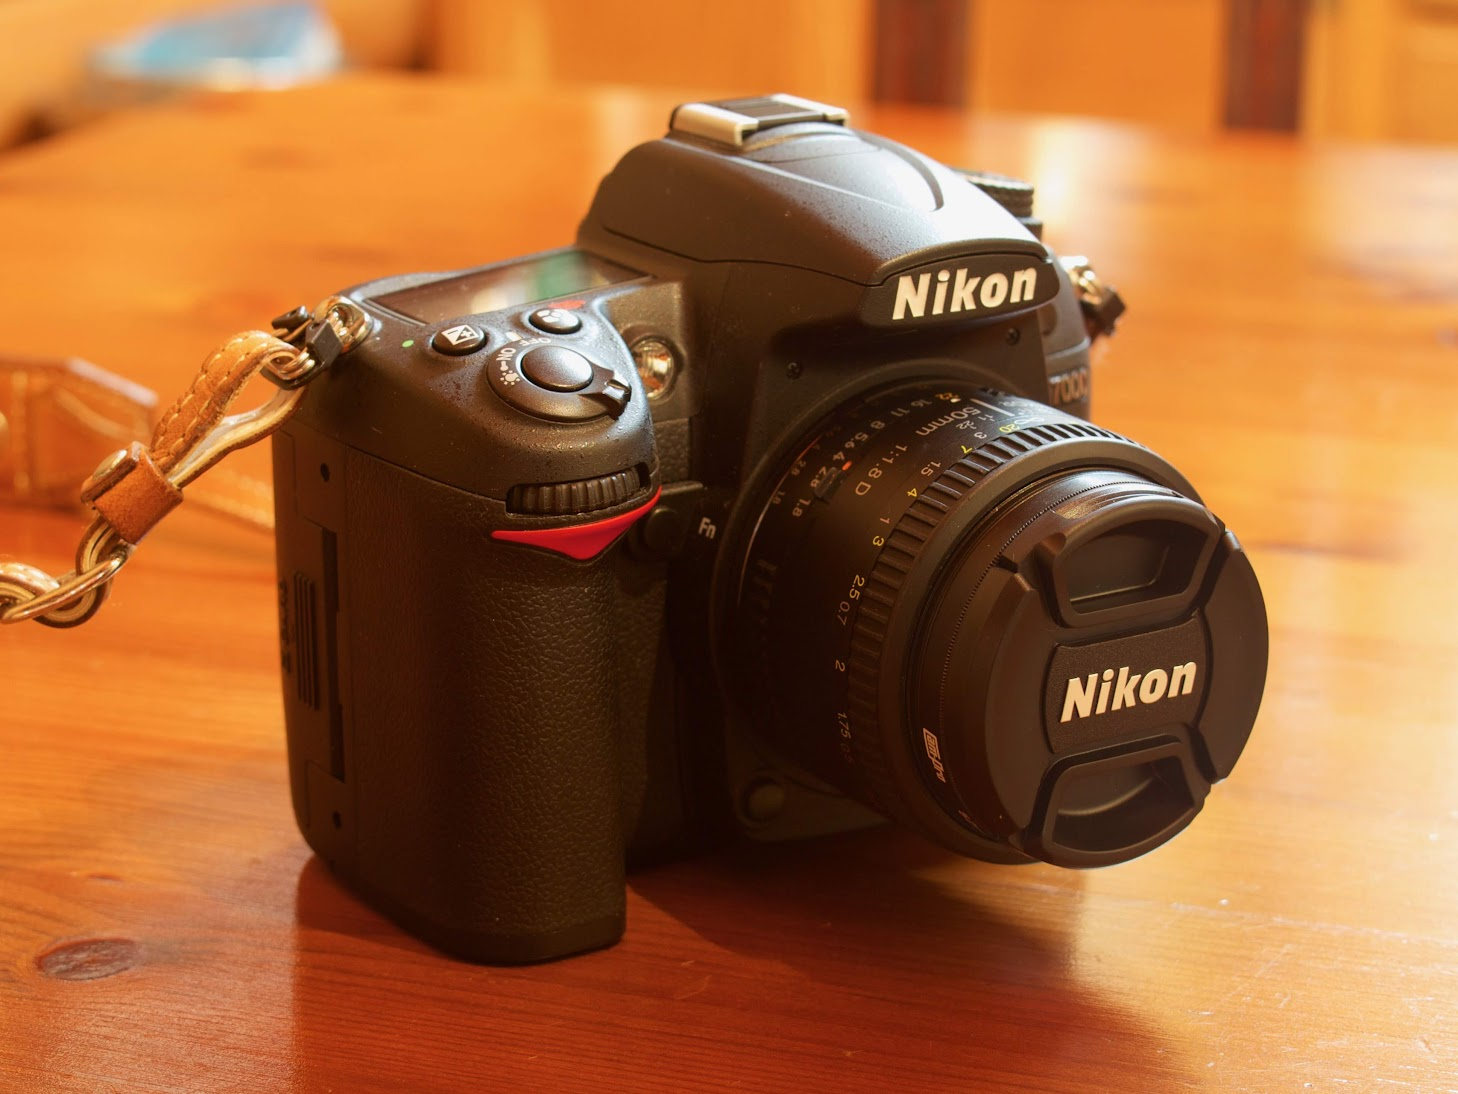 Nikon D7000 with AF Nikkor 50mm f/1.8D